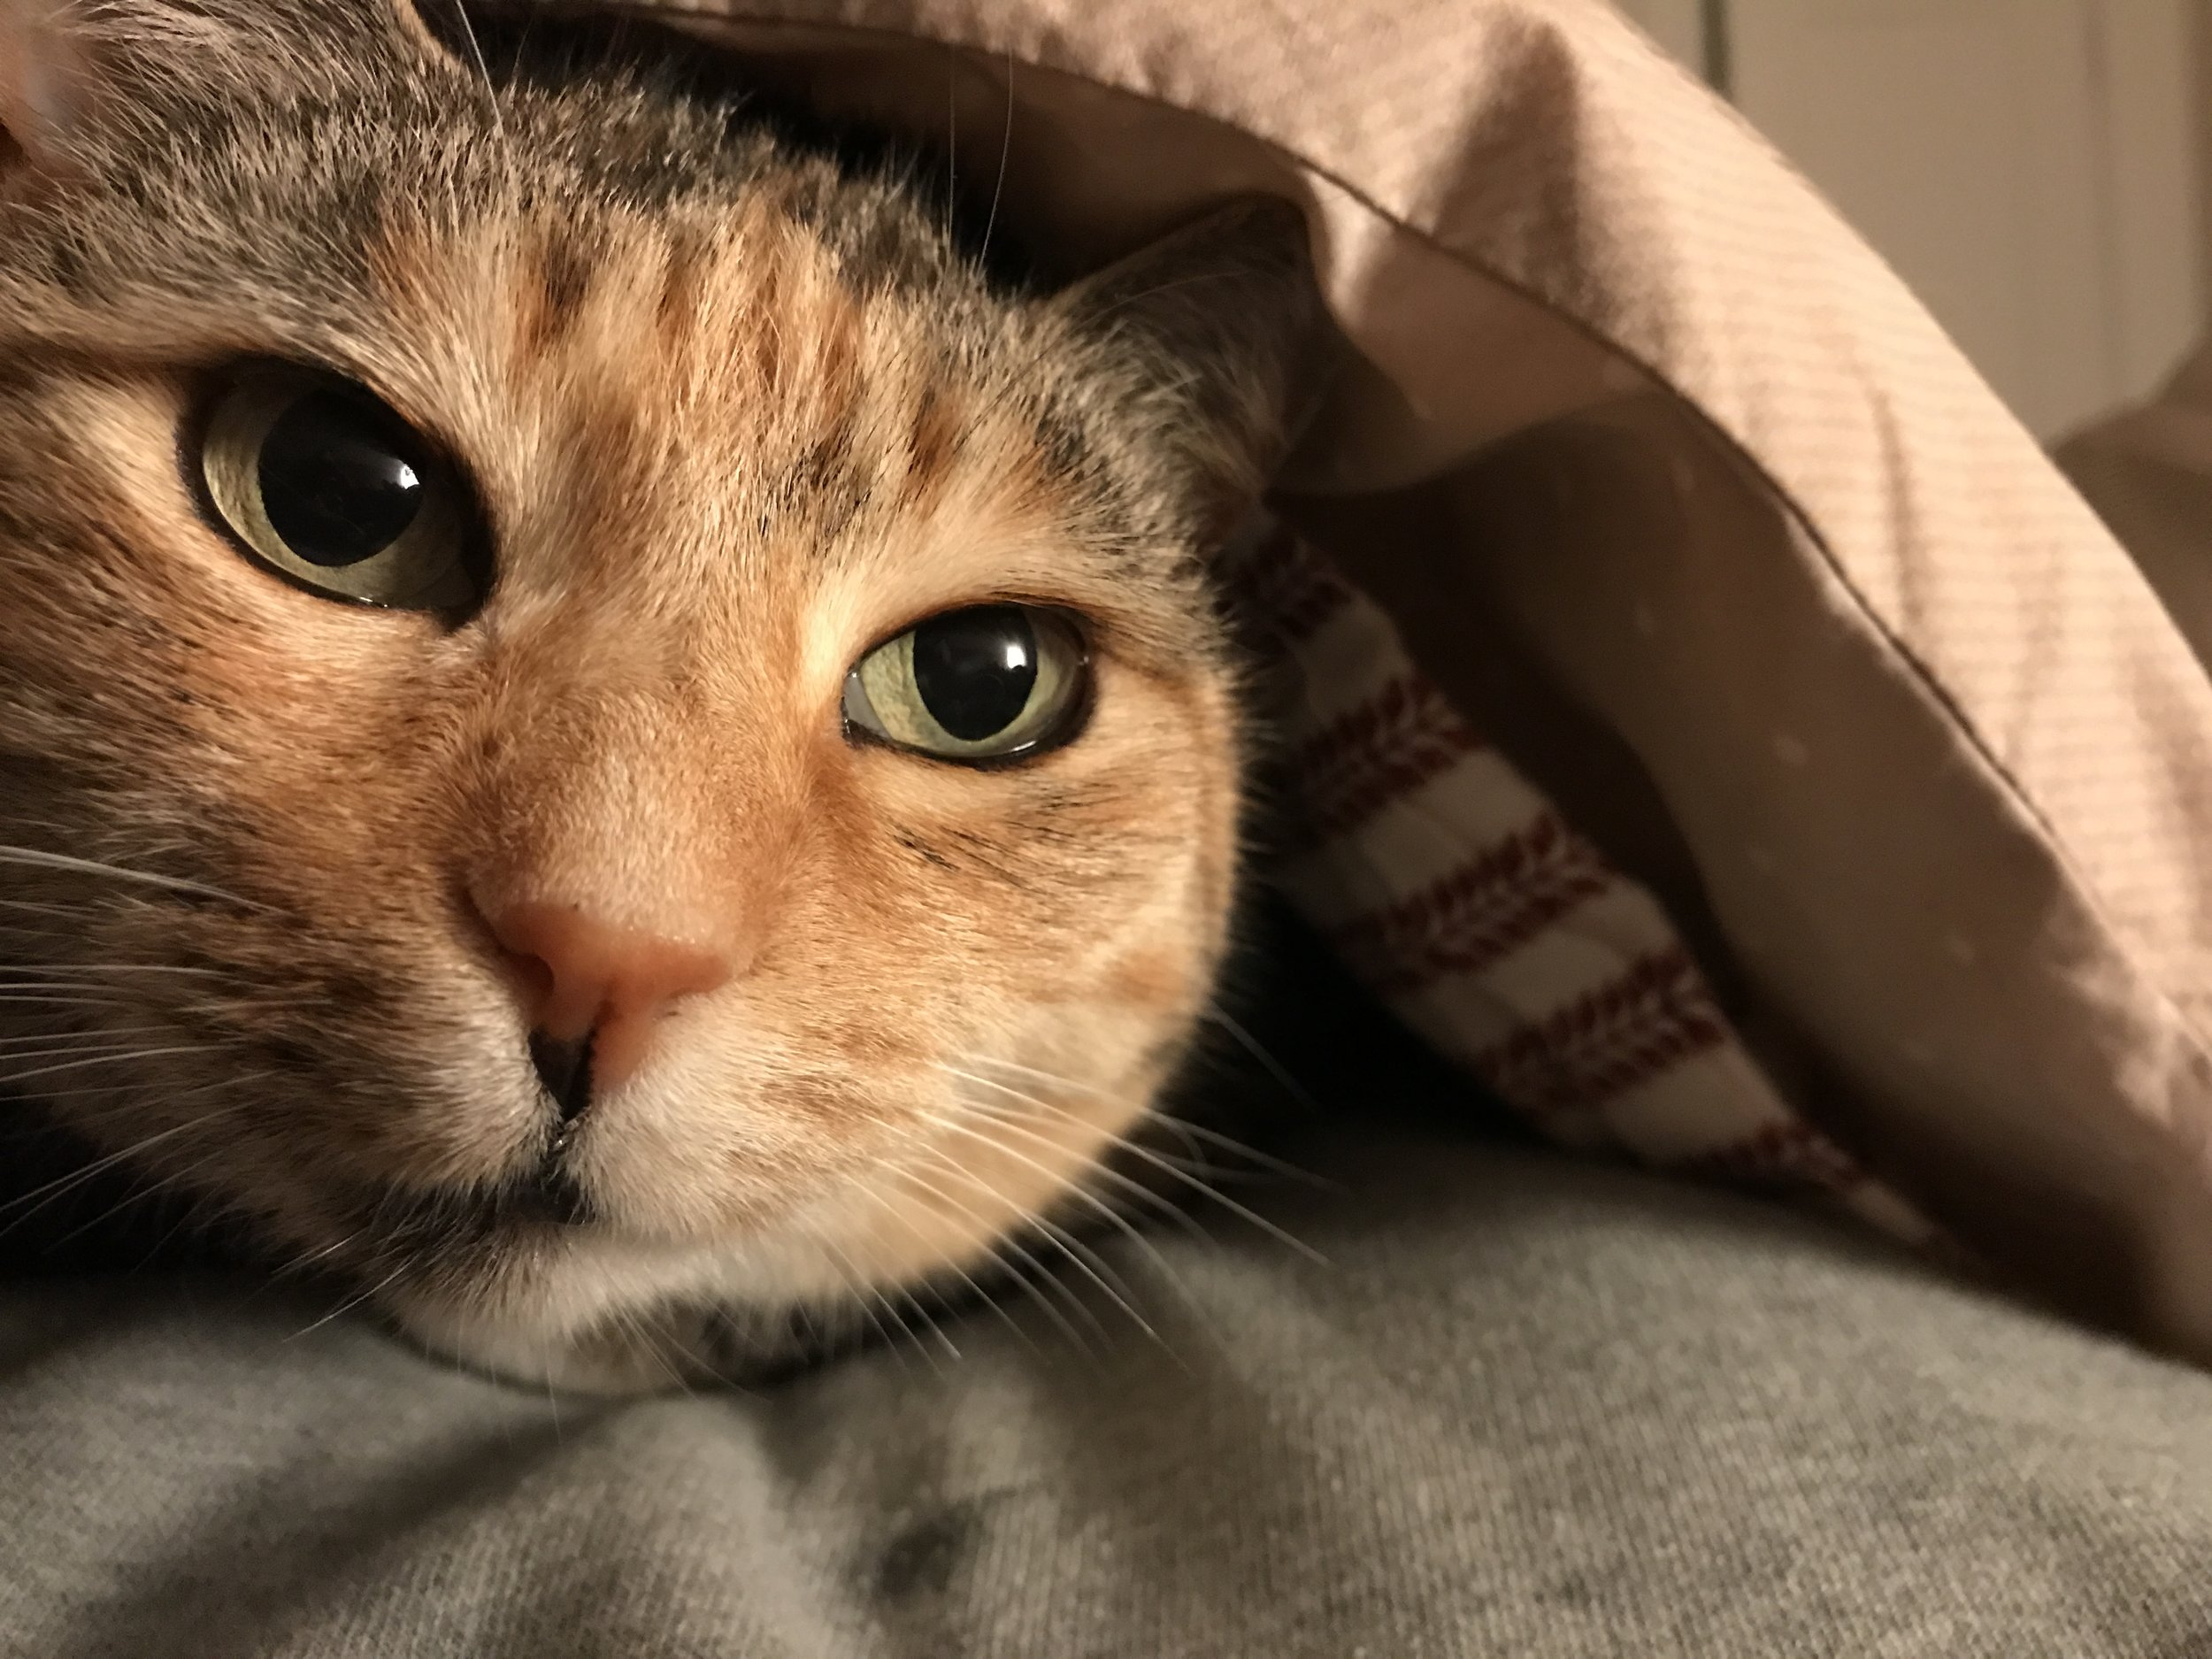 Kitty gets cold and gets under the covers with Andy